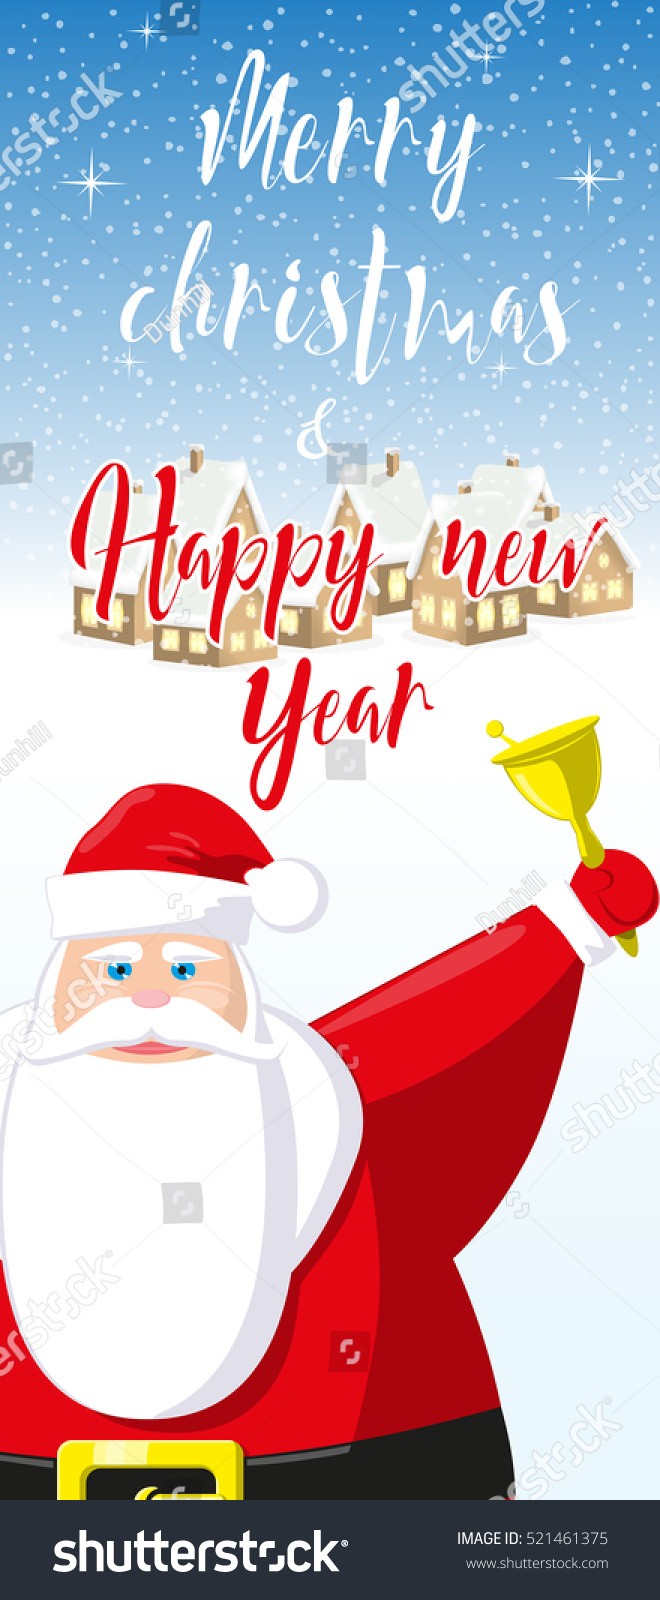 merry christmas happy new year banner stock vector royalty free 521461375 https www shutterstock com image vector merry christmas happy new year banner 521461375